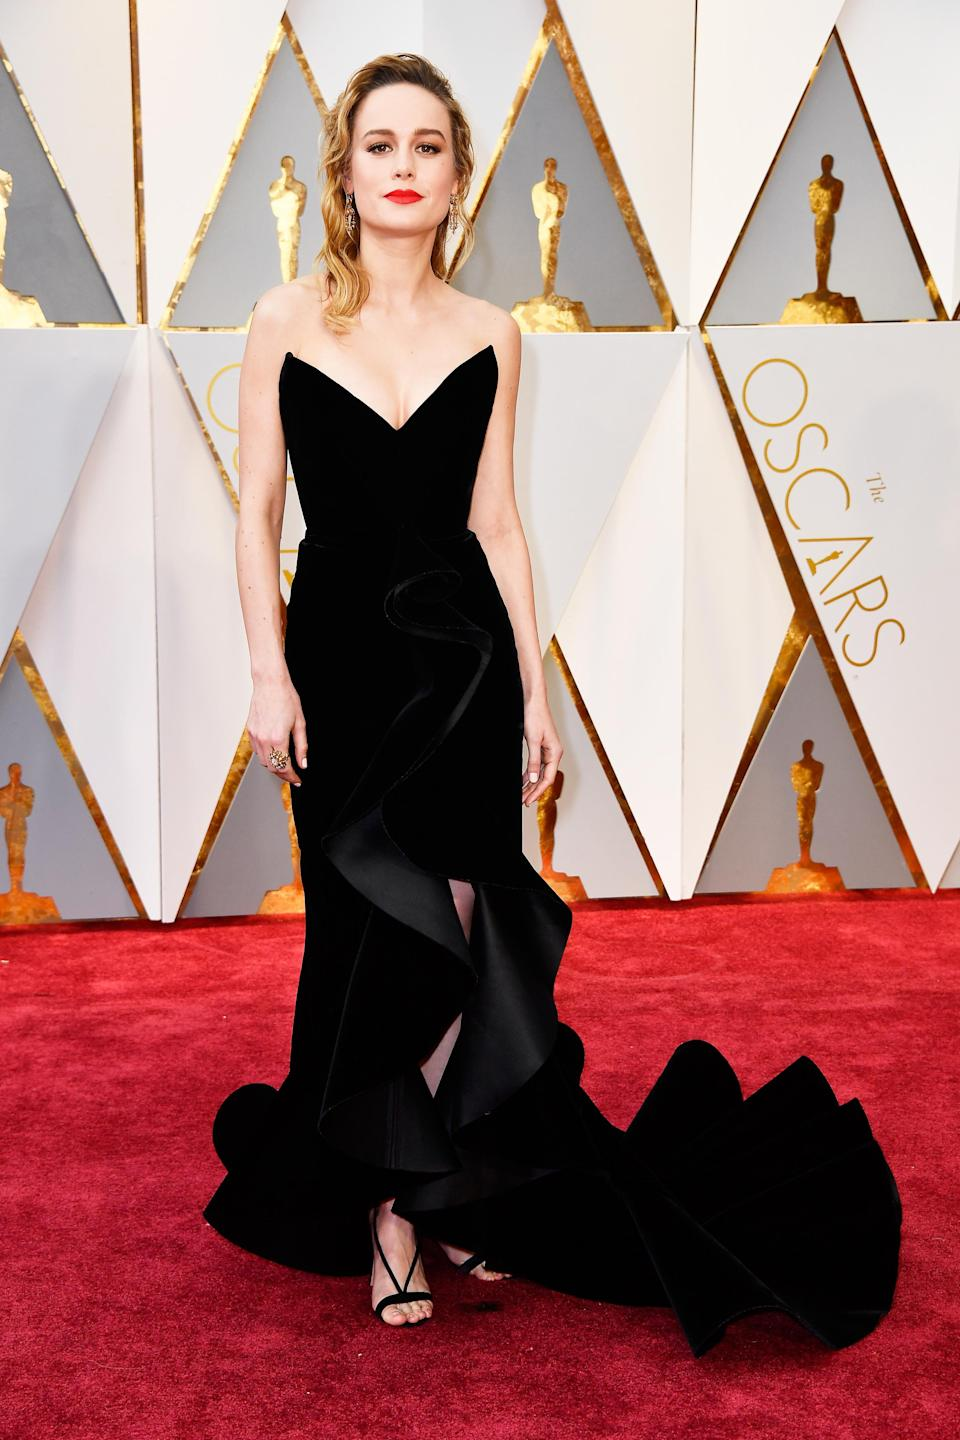 In 2017, Brie Larson brought old school Hollywood glamour to the red carpet in her va-va-voom Oscar de la Renta dress. Complete with a ruffled train and dramatic V-neckline, the actress looked like the most glamorous Disney villain of all time.